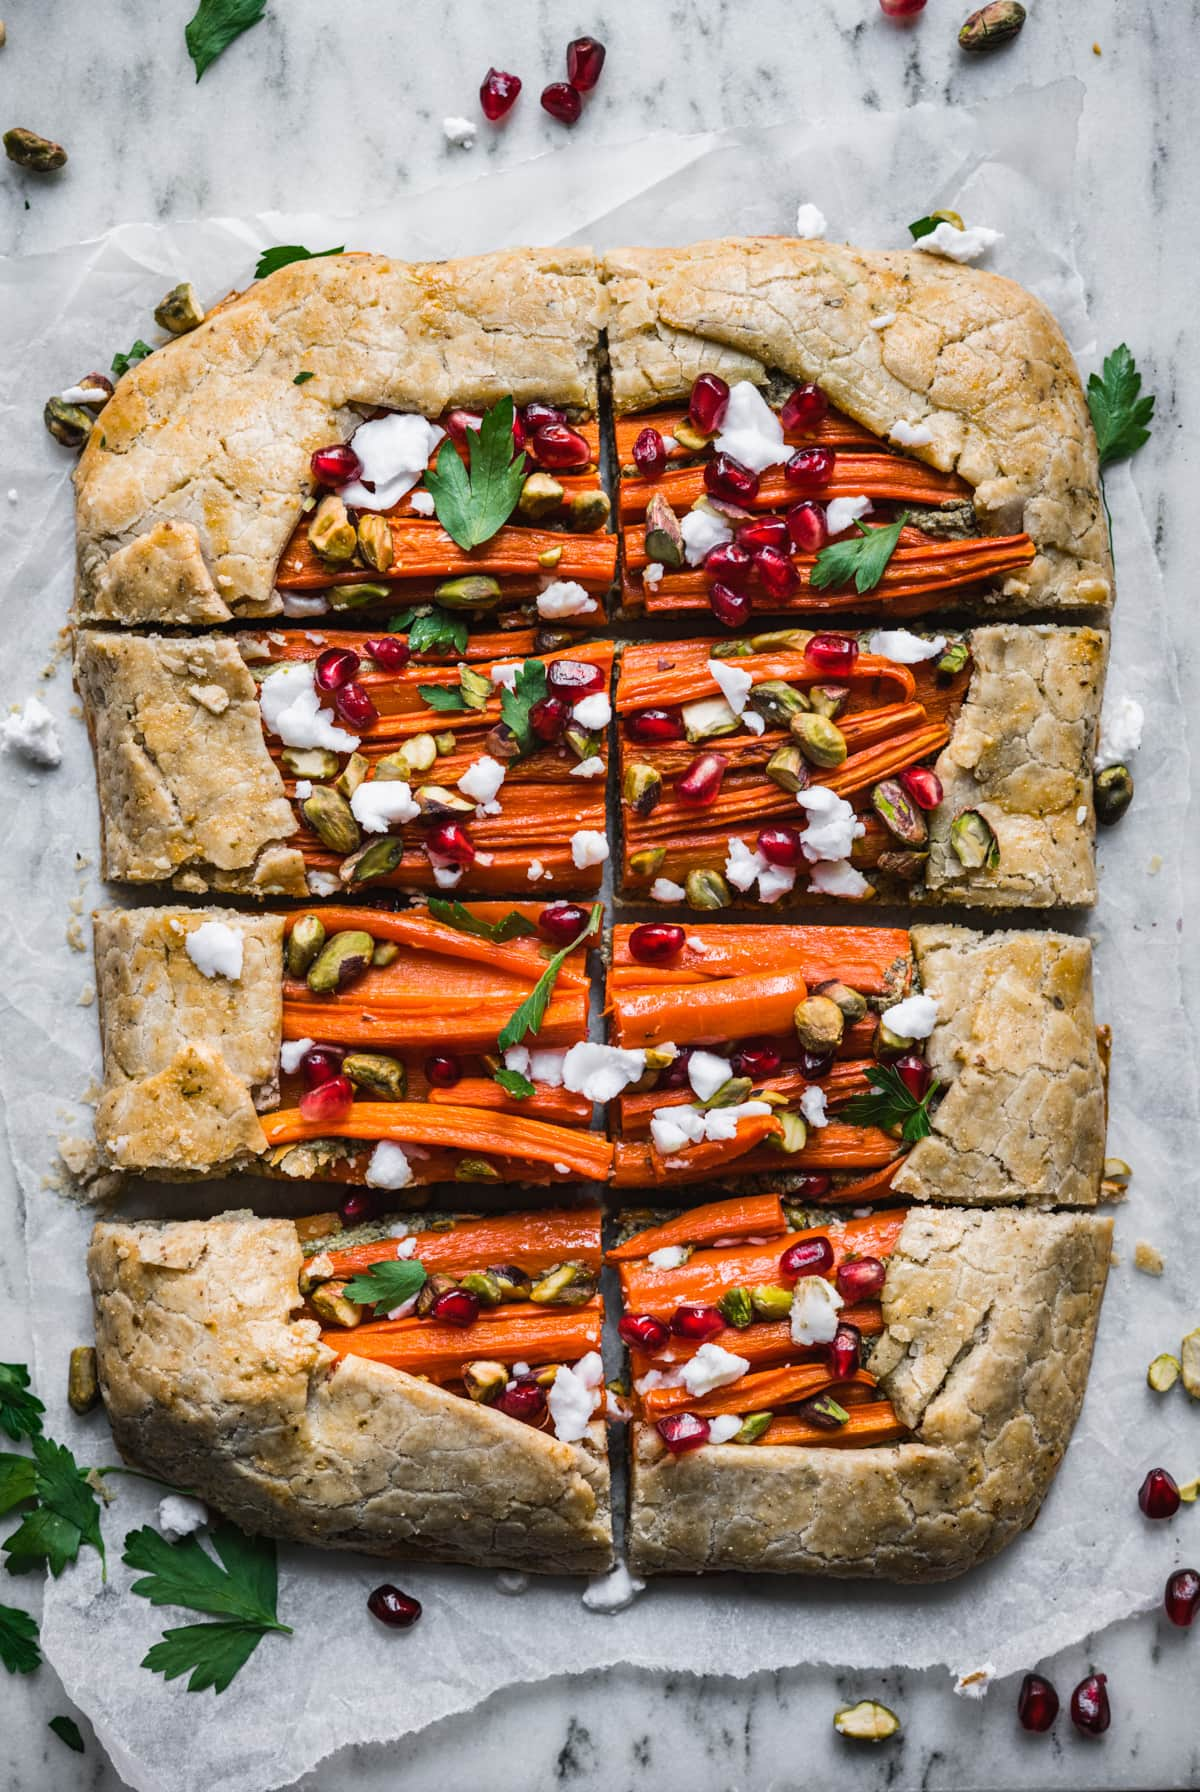 overhead view of sliced carrot tart with pomegranate, pesto and pistachios.